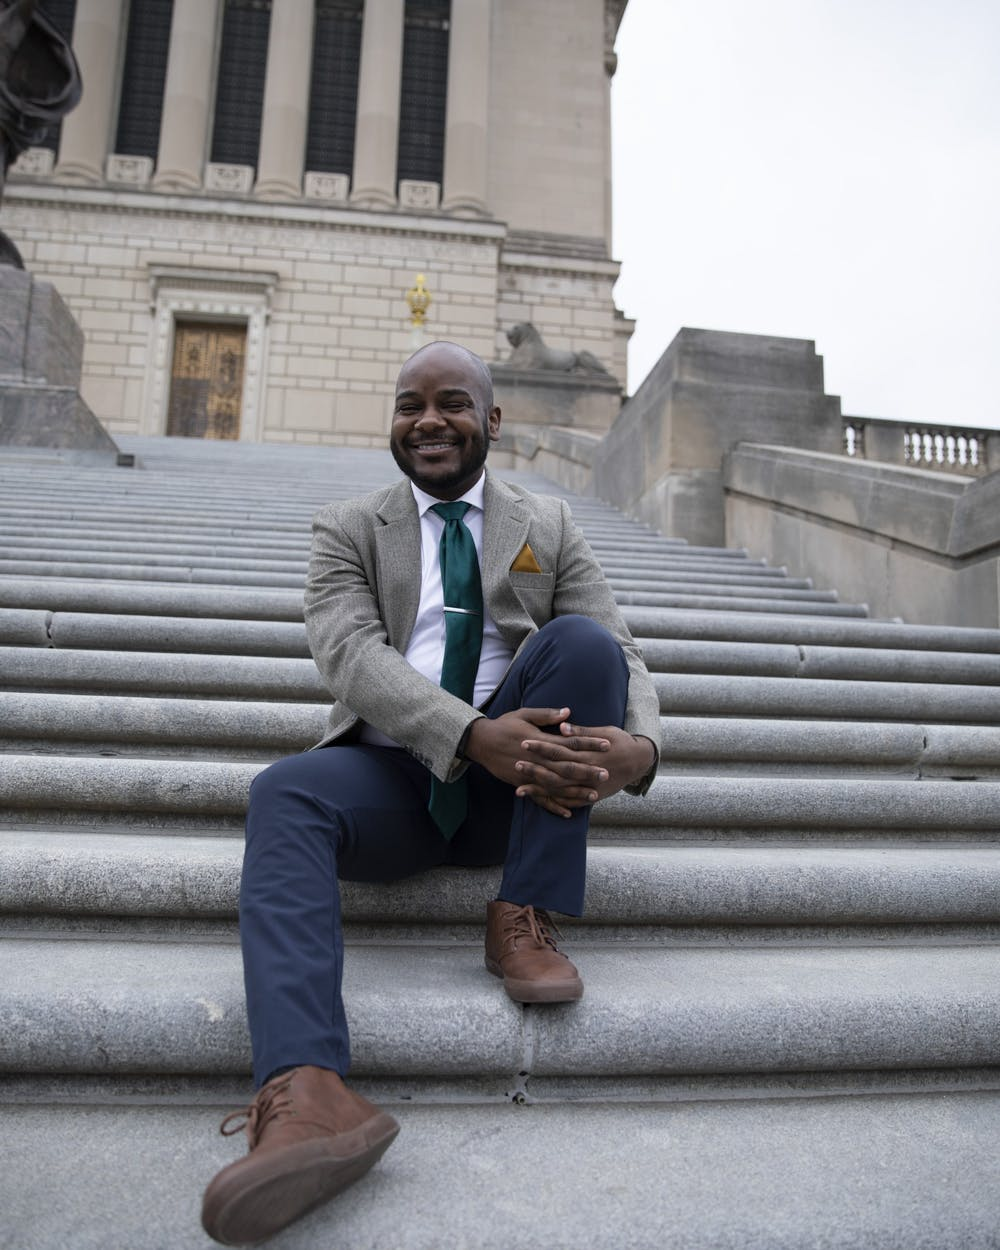 """<p>Aaron Paige, assistant professor of music, poses for a photo March 28, 2021, at the Indiana War Memorial in Indianapolis. As a musician, Paige said he wants to always elevate and push the boundaries of his art. As a professor, Paige said he wants his students to have that same """"hunger"""" for change as he does. <strong>Jacob Musselman, DN</strong></p>"""